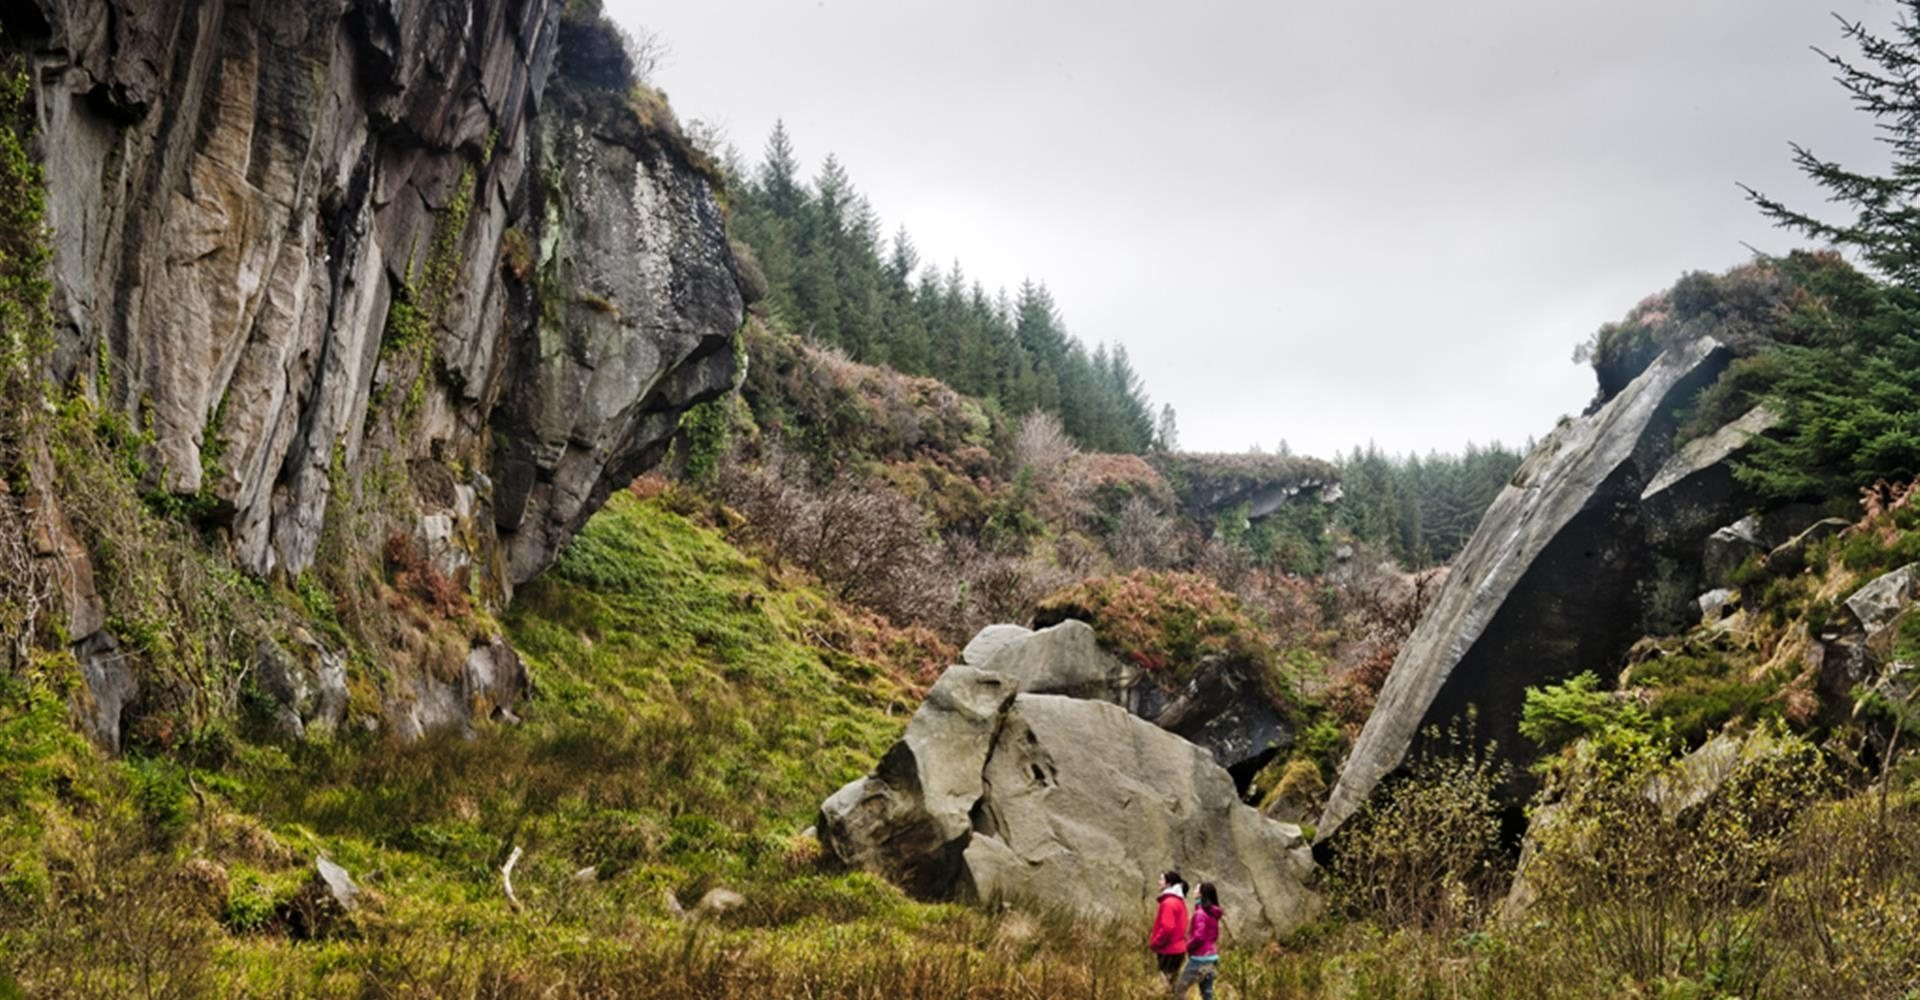 Geopark Fermanagh - Staycation things to do